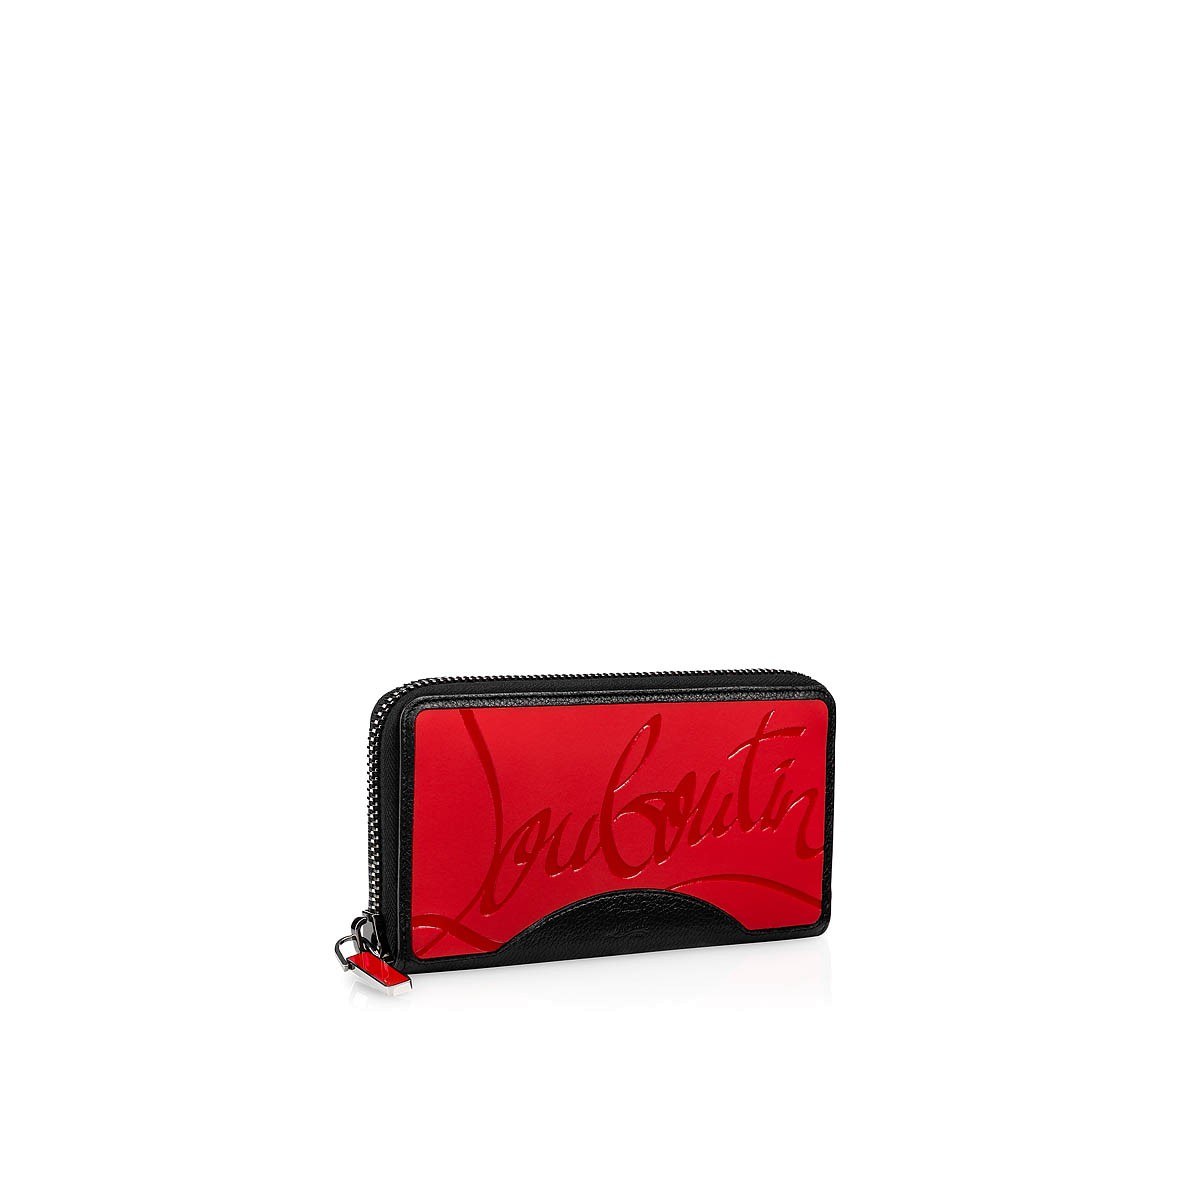 Small Leather Goods - Panettone Wallet - Christian Louboutin